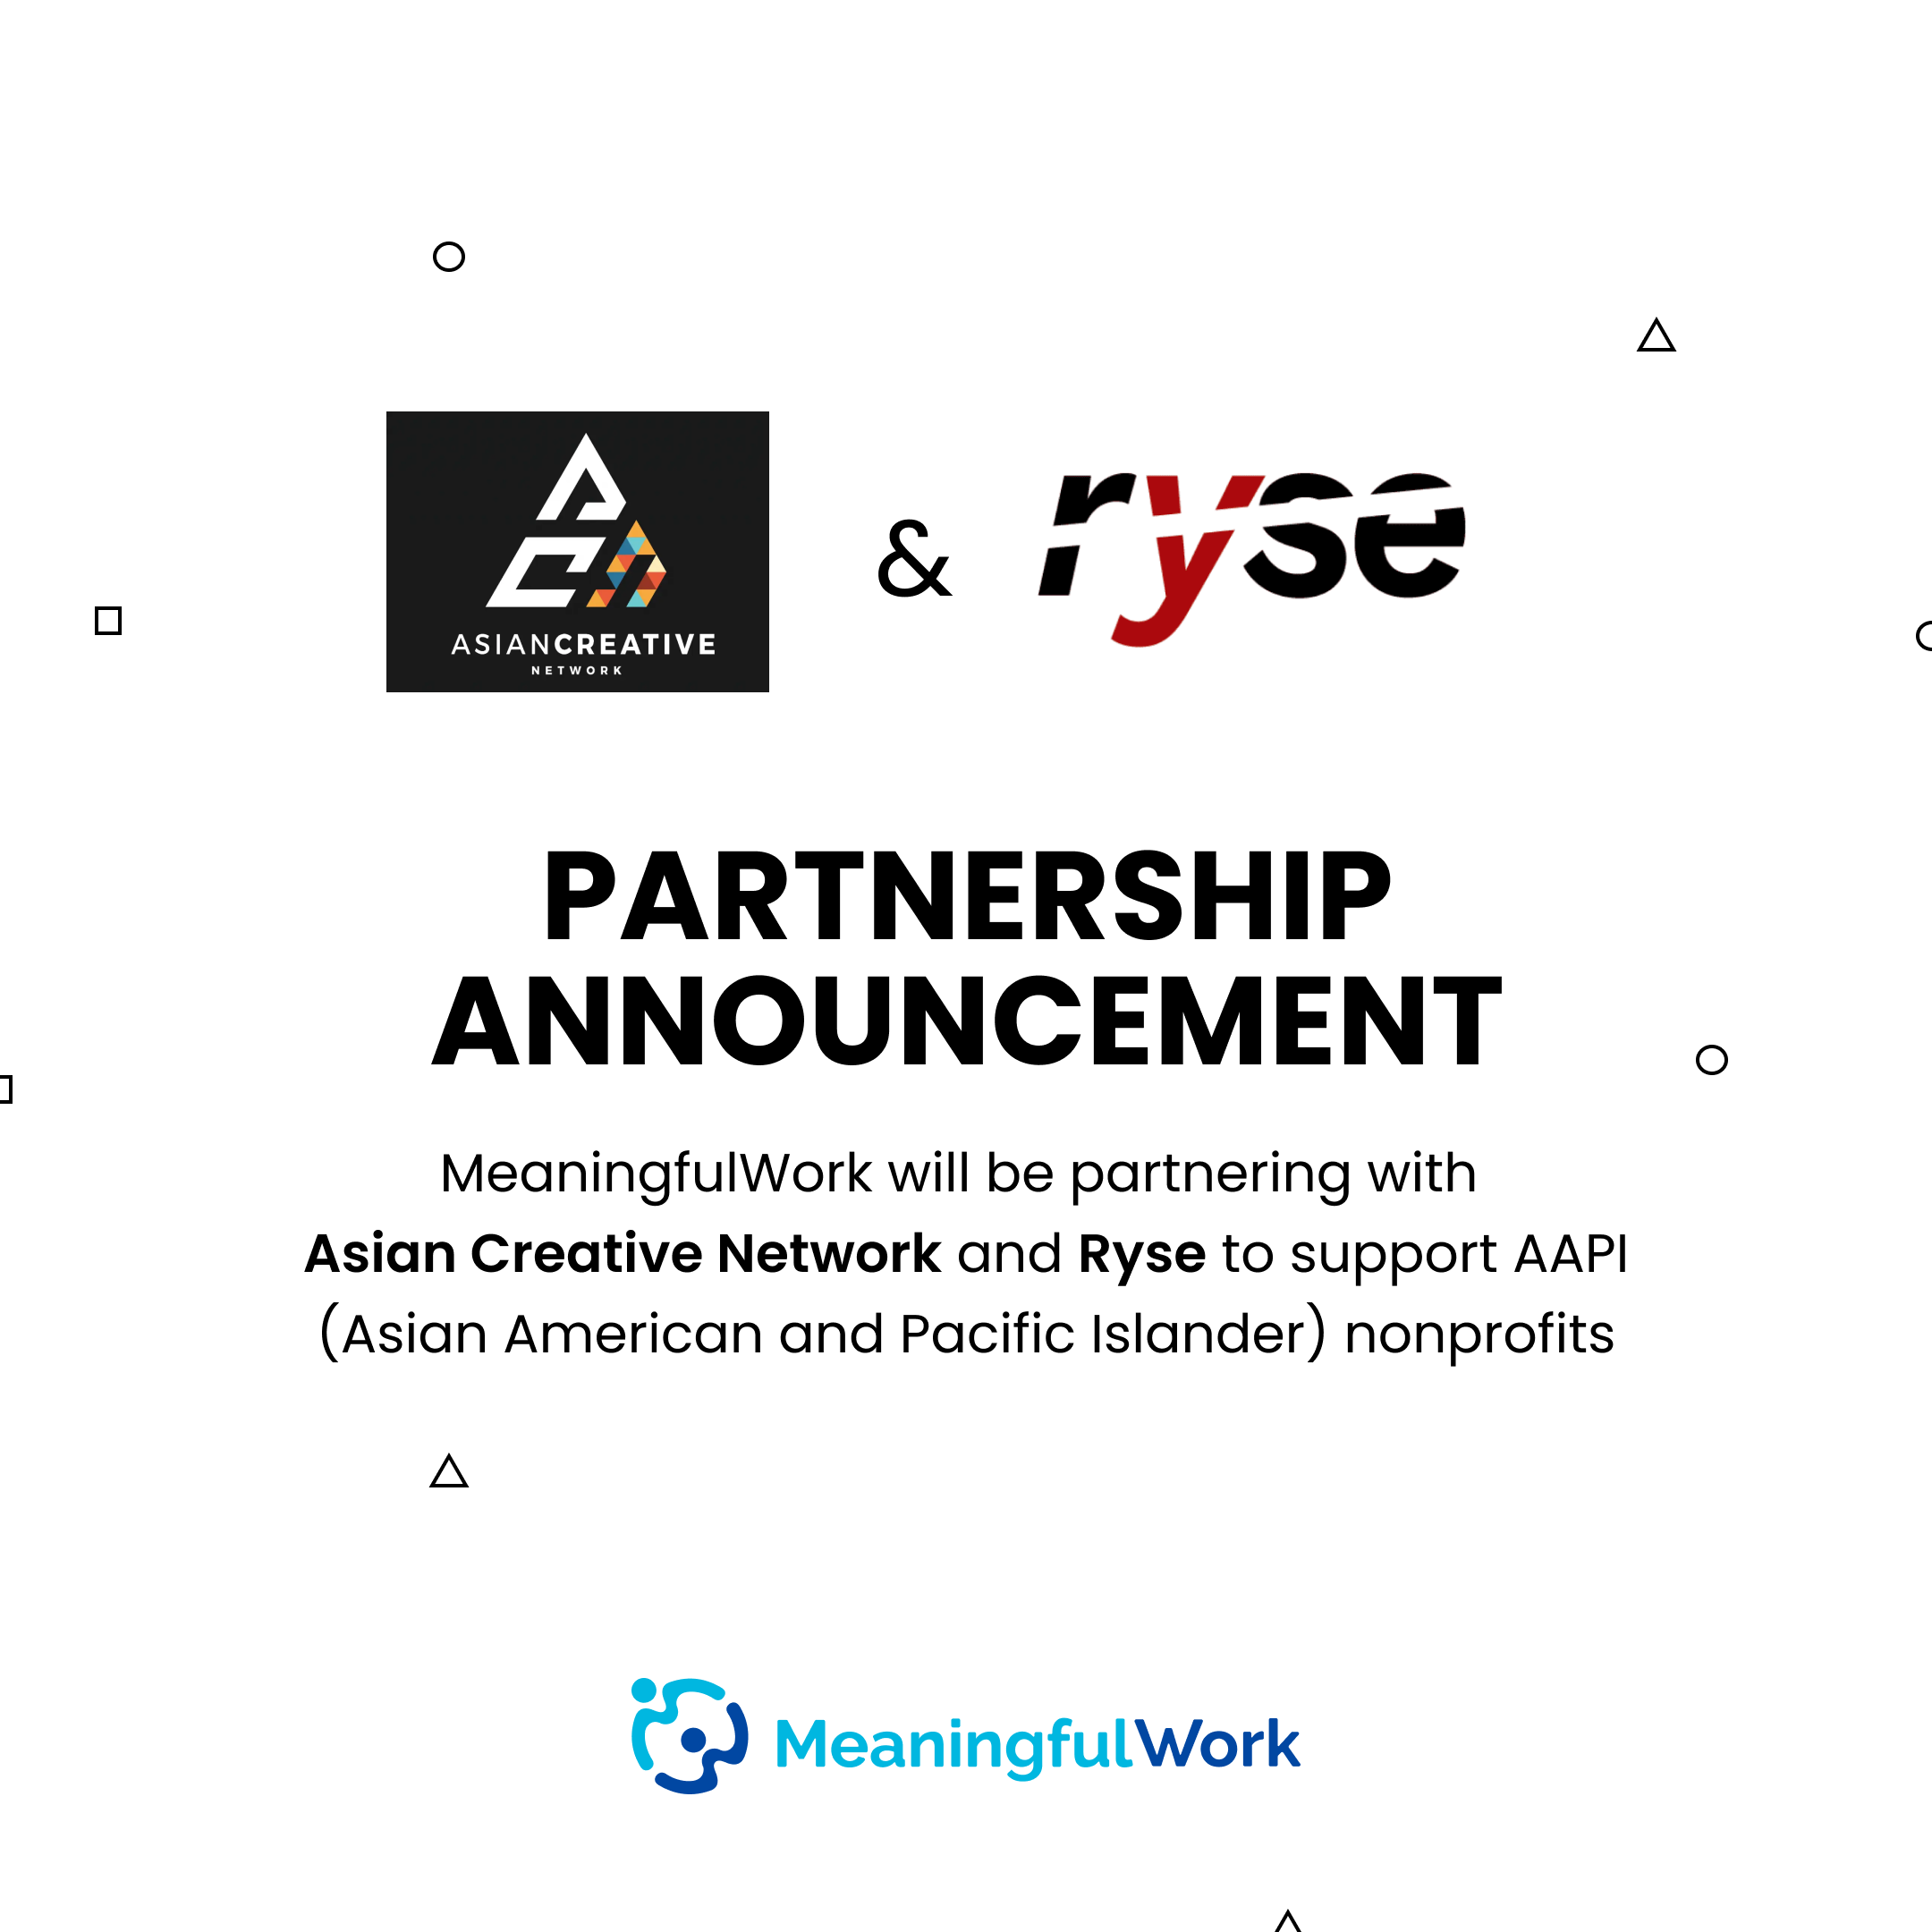 MeaningfulWork partnership announcement with ACN and Ryse